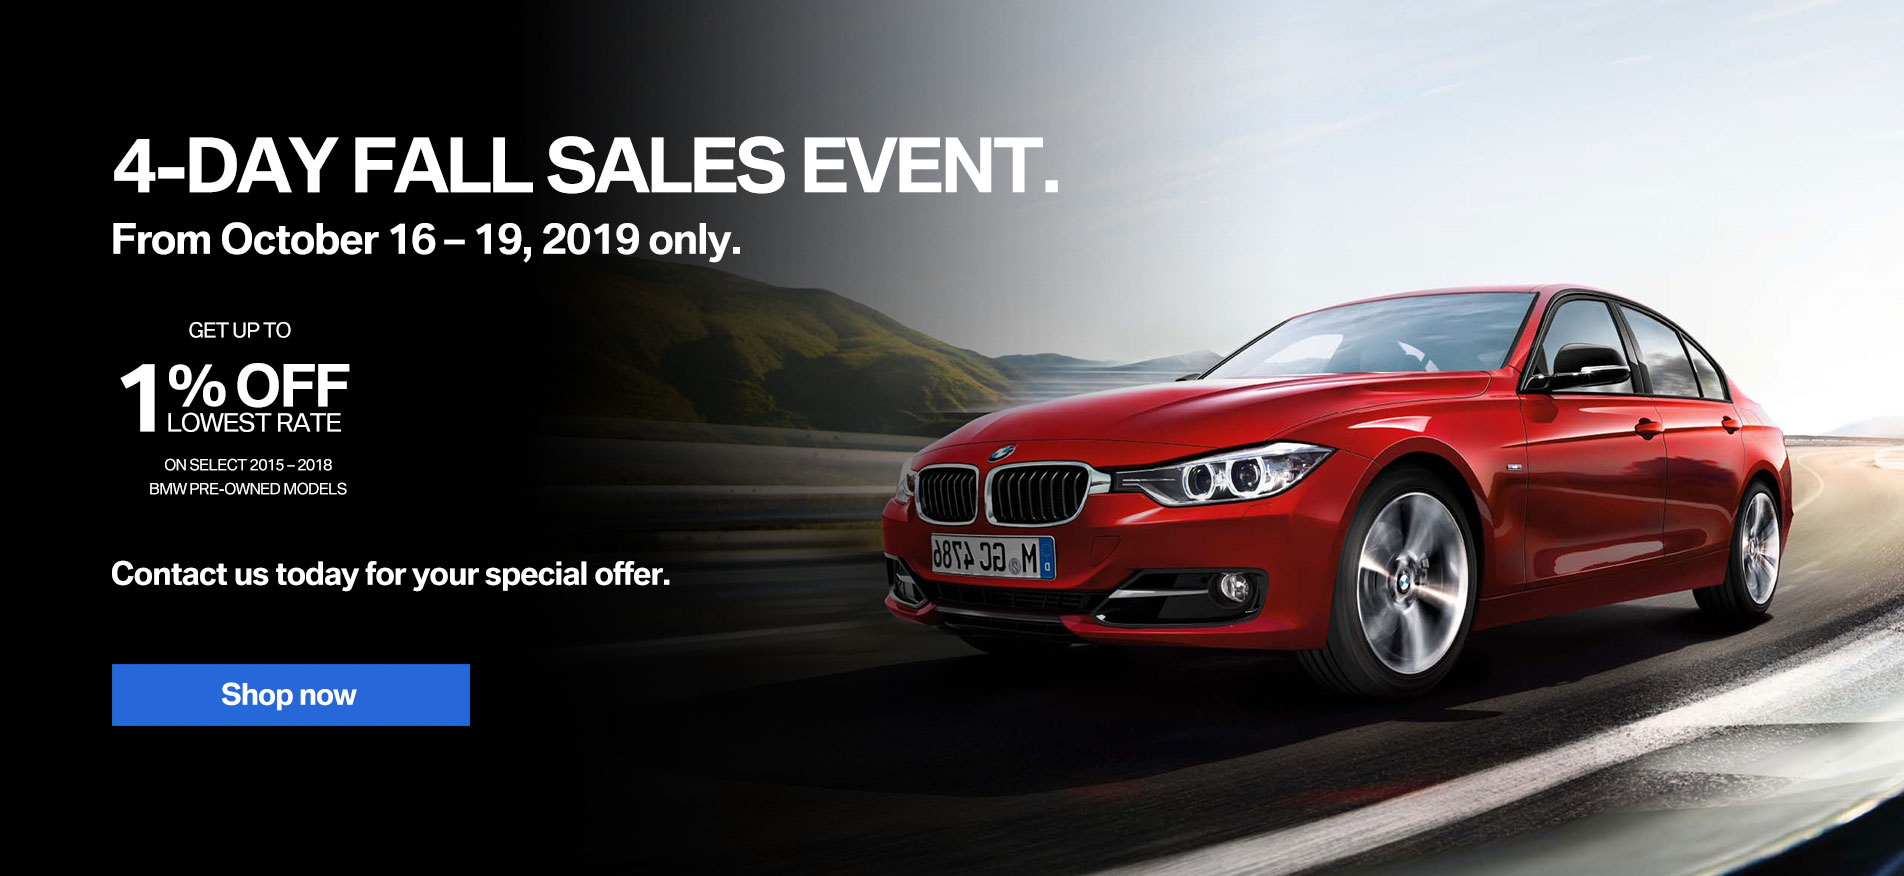 Auto West BMW Pre-Owned Fall Sales Event 2019